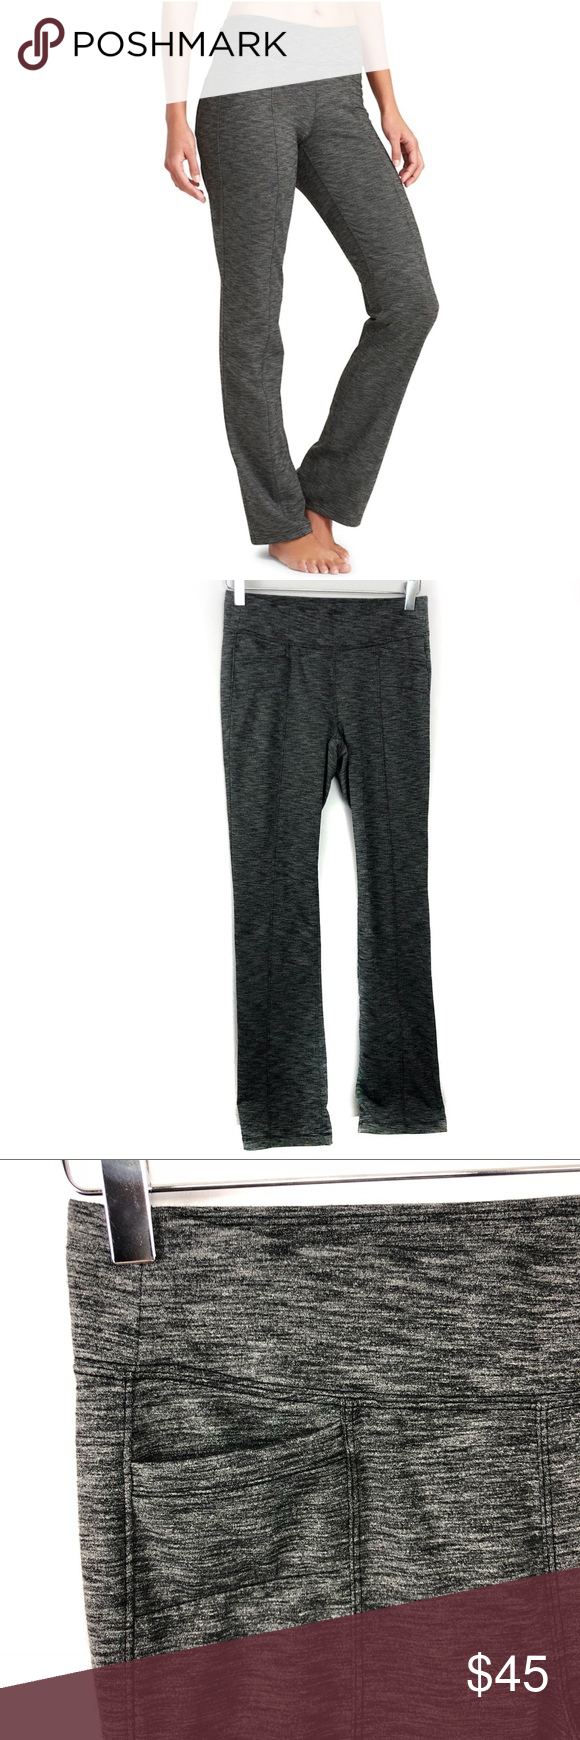 3f2784f9d0cc Athleta Metro Classic Pants Heather Black Yoga •Athleta Metro Classic Pant  Black Heather Yoga Athletic Casual •Women s Size Small •In great preowned  ...